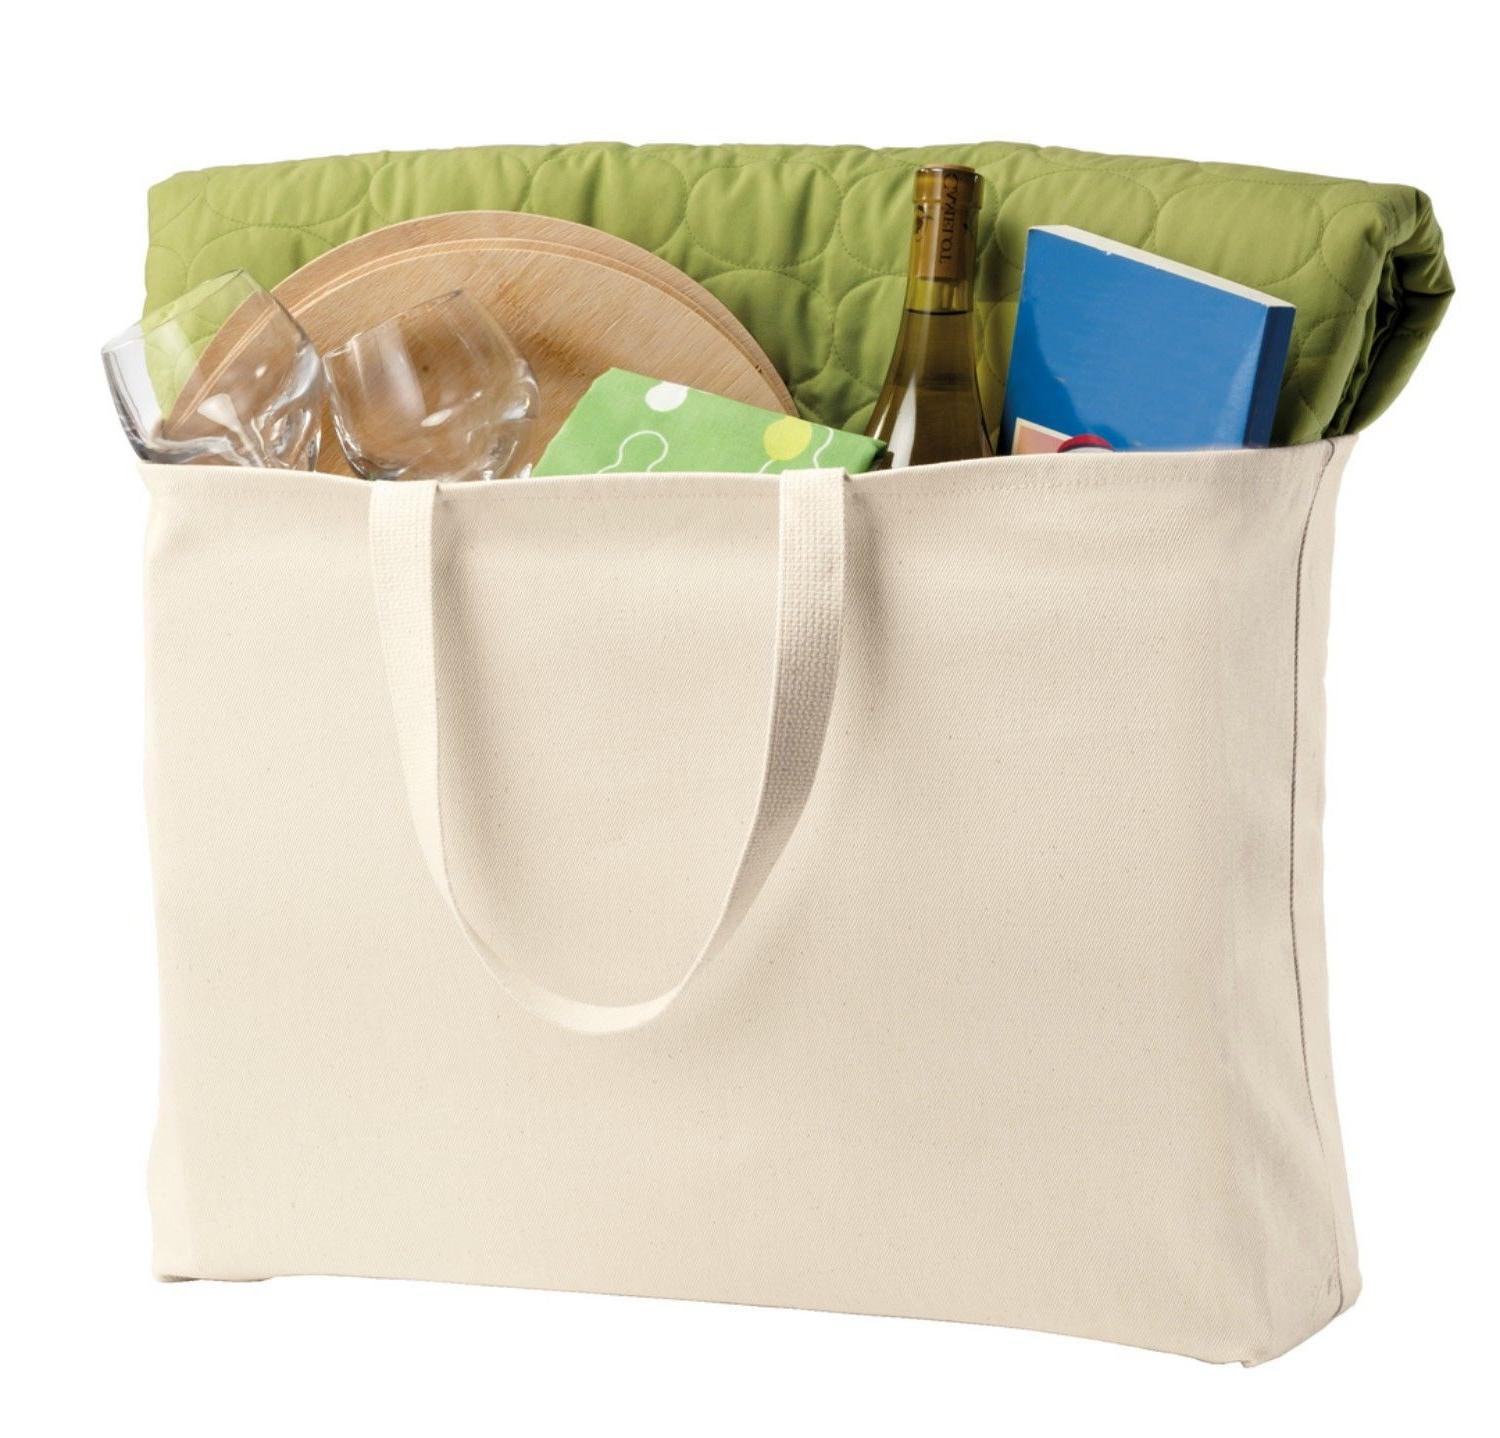 Extra Large Tote Bag Shopping Port